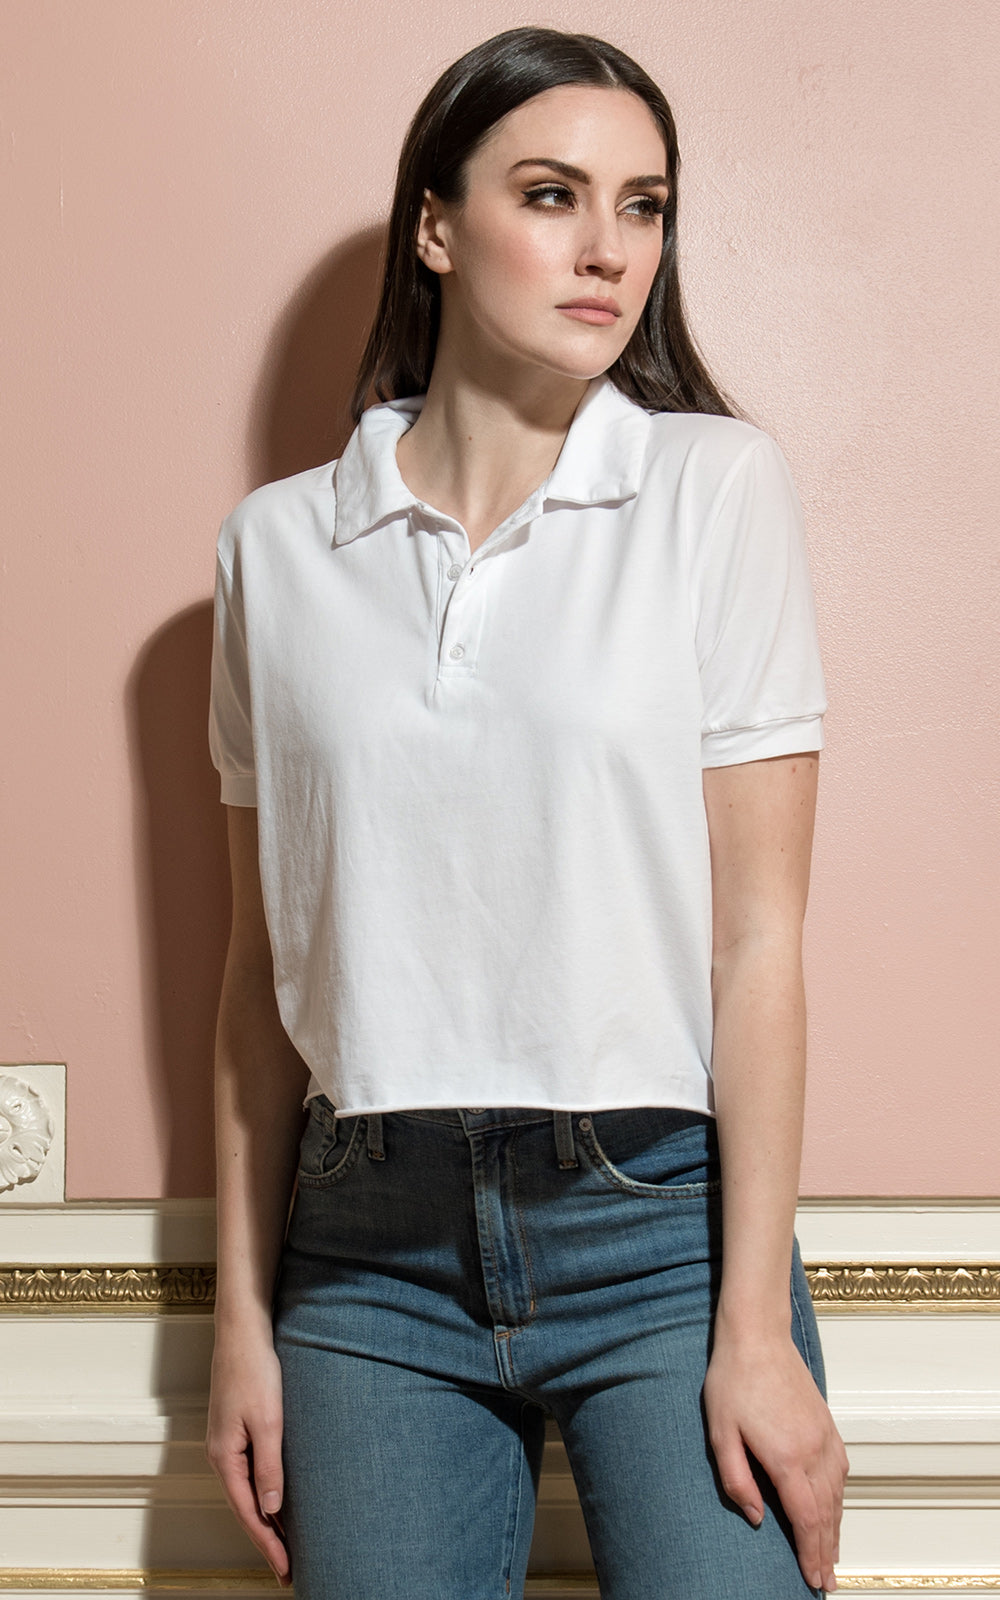 Lanston Crop Top Polo Shirt White